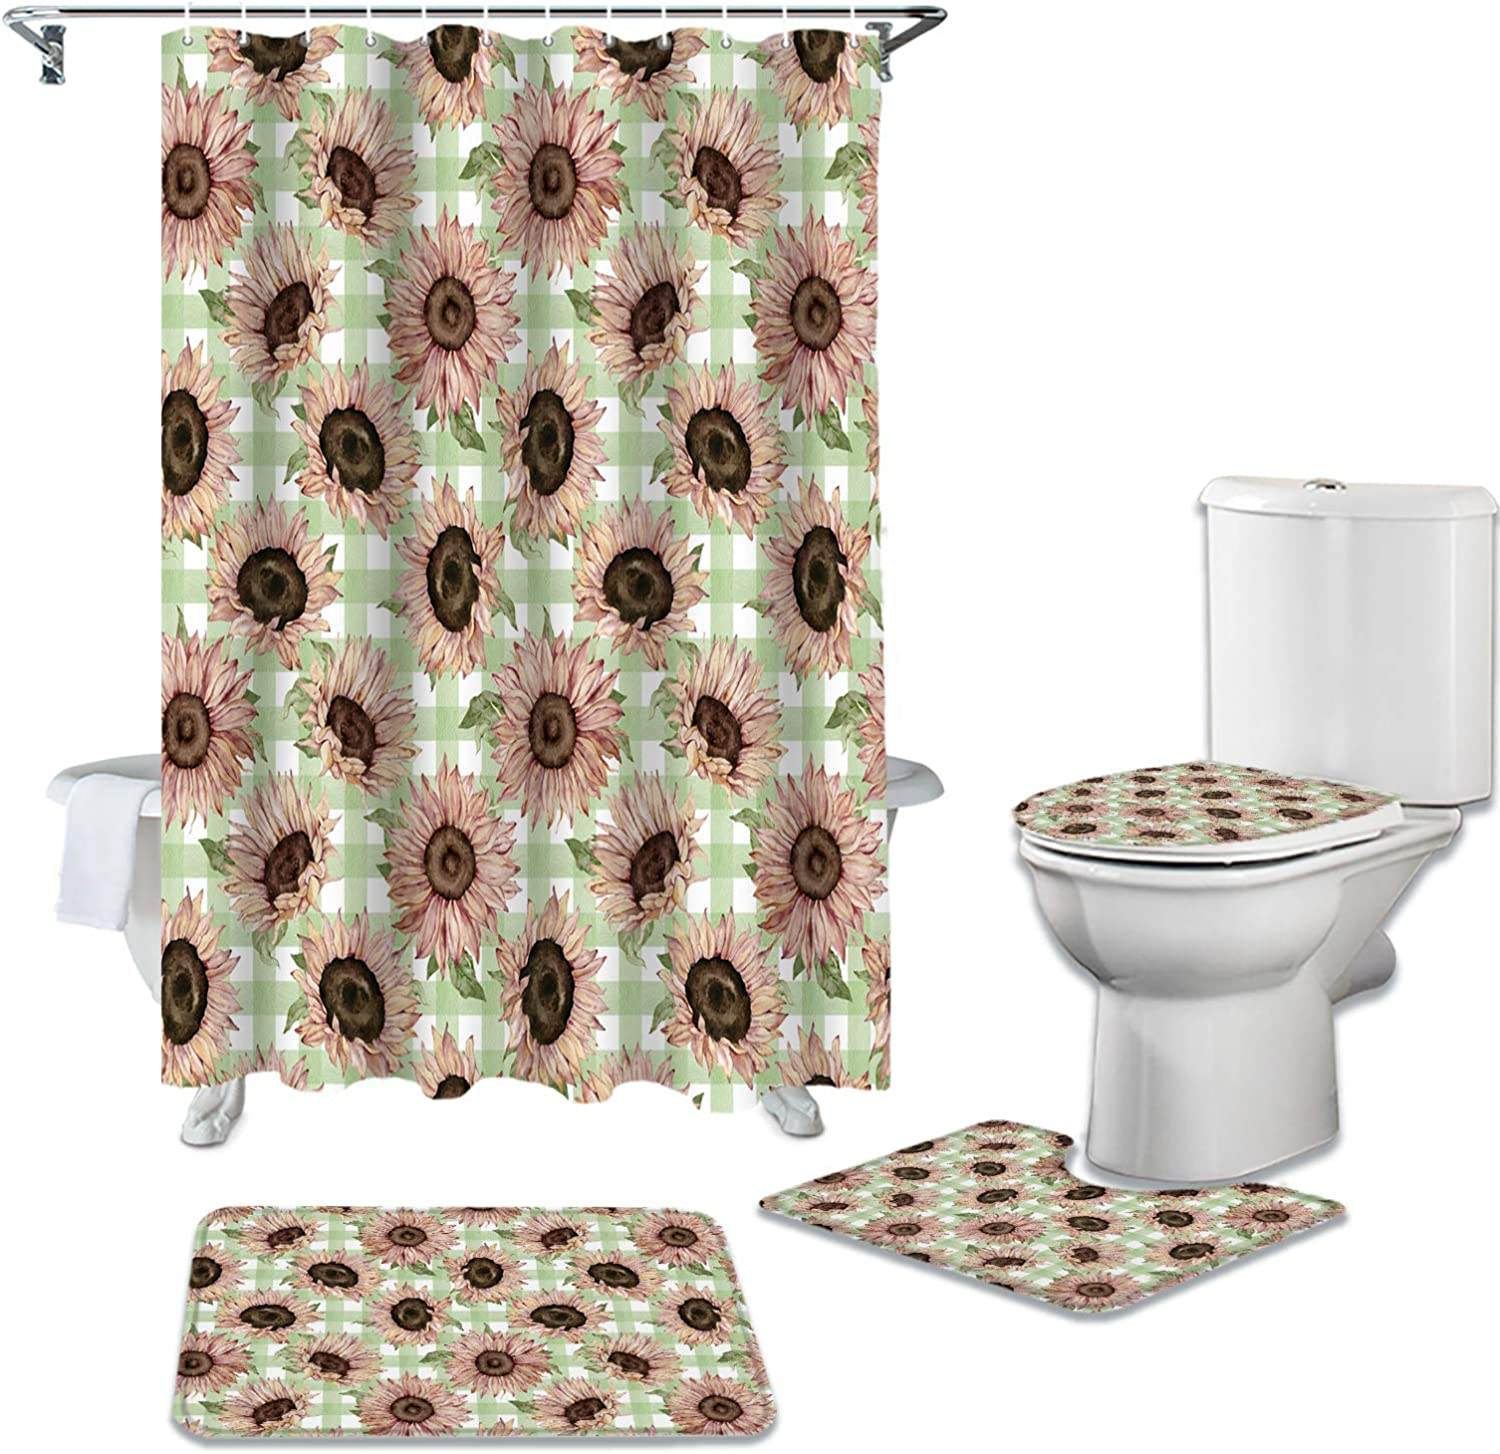 Sunflowers Max 68% OFF 4 Outlet SALE Pcs Shower Curtain Set L Non-Slip Rugs with Toilet